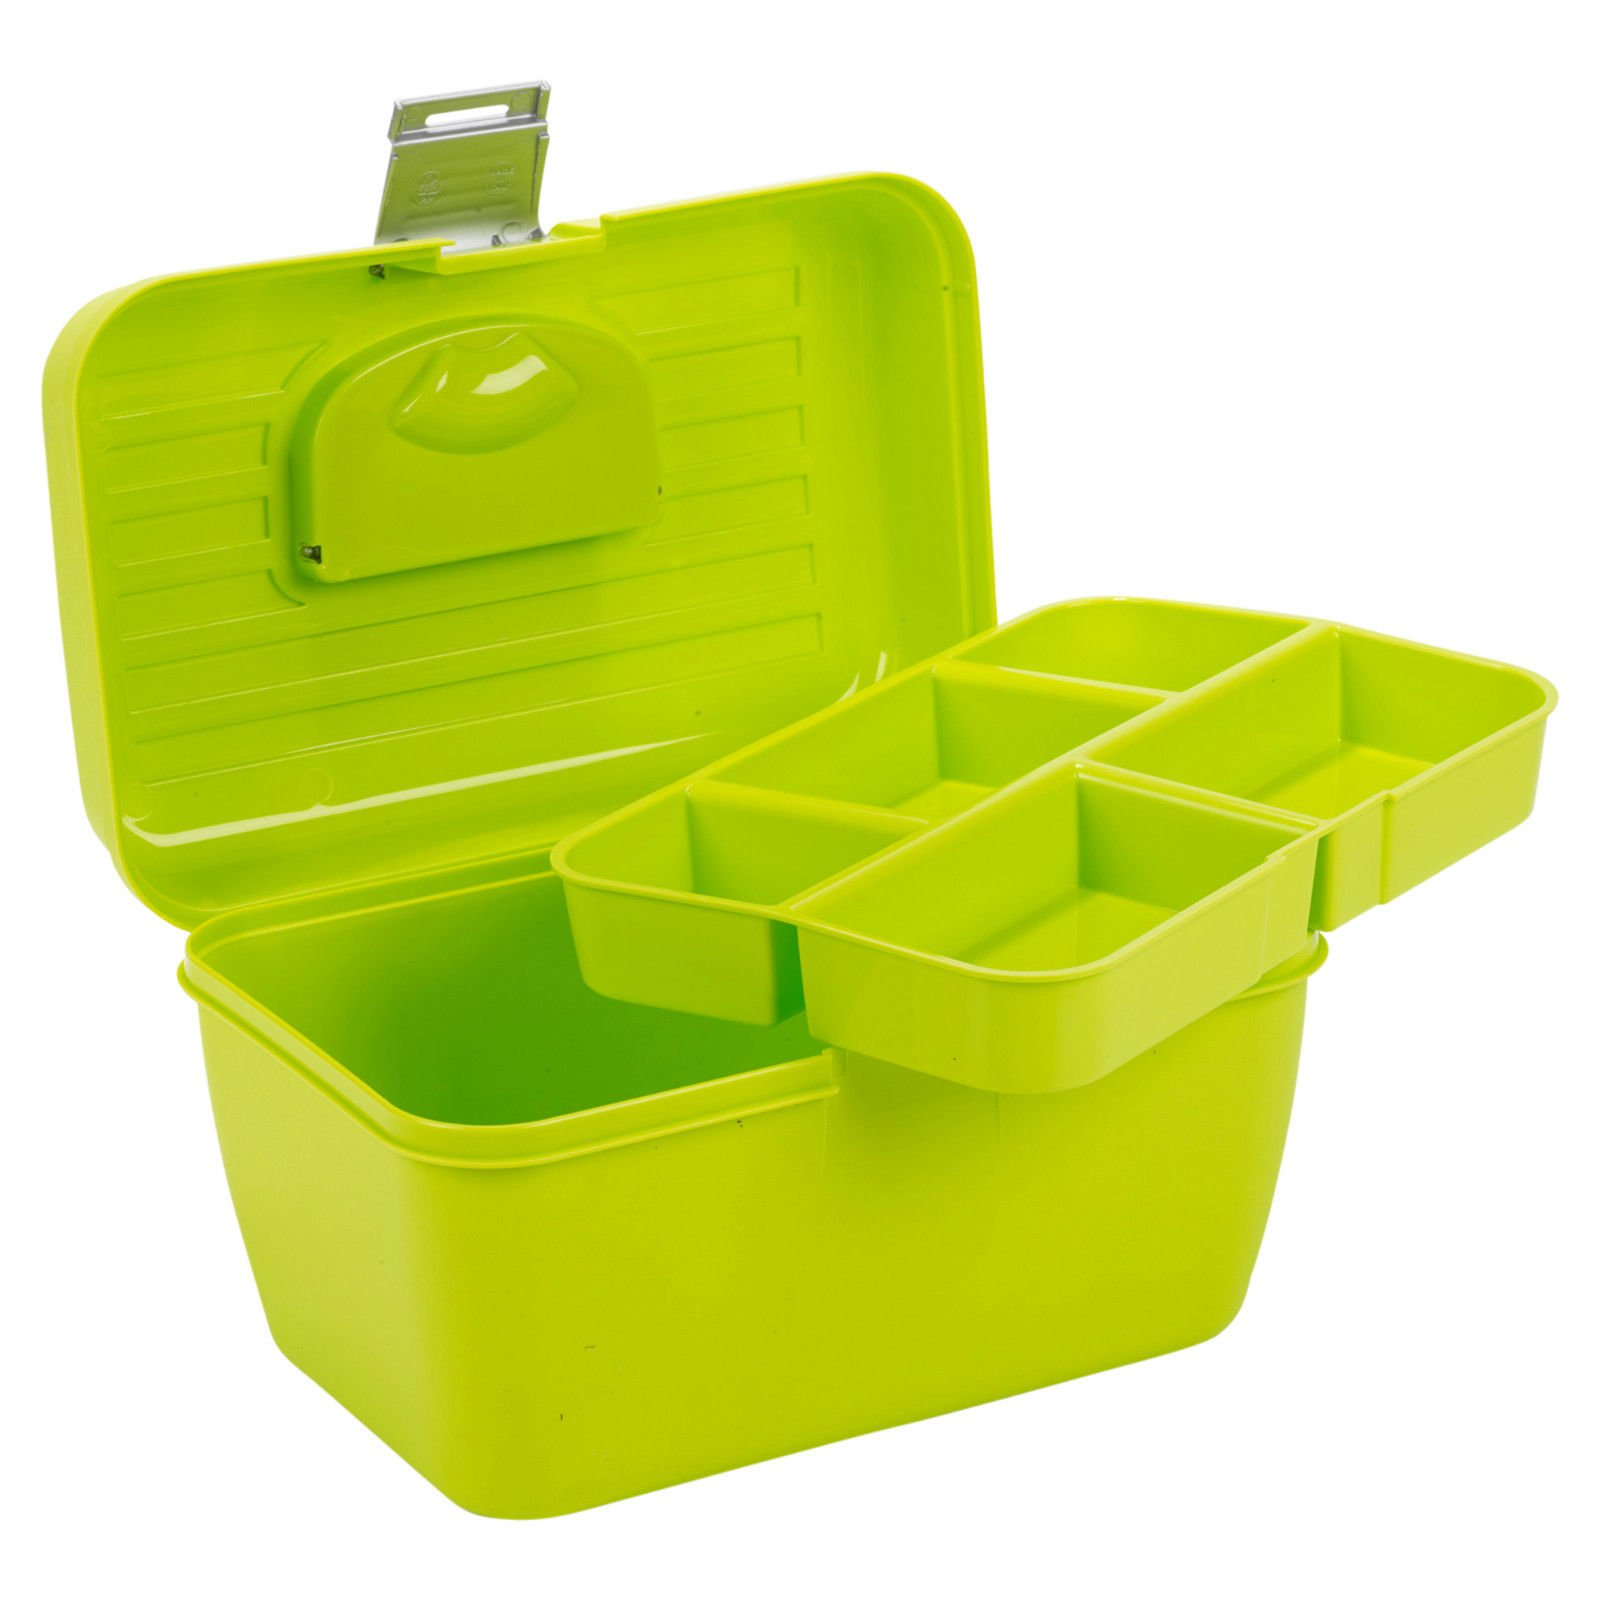 Easygift Products Storage Box With Removable Tray Carry Tool Case With Handle Multi Functional Organiser - Lime Green